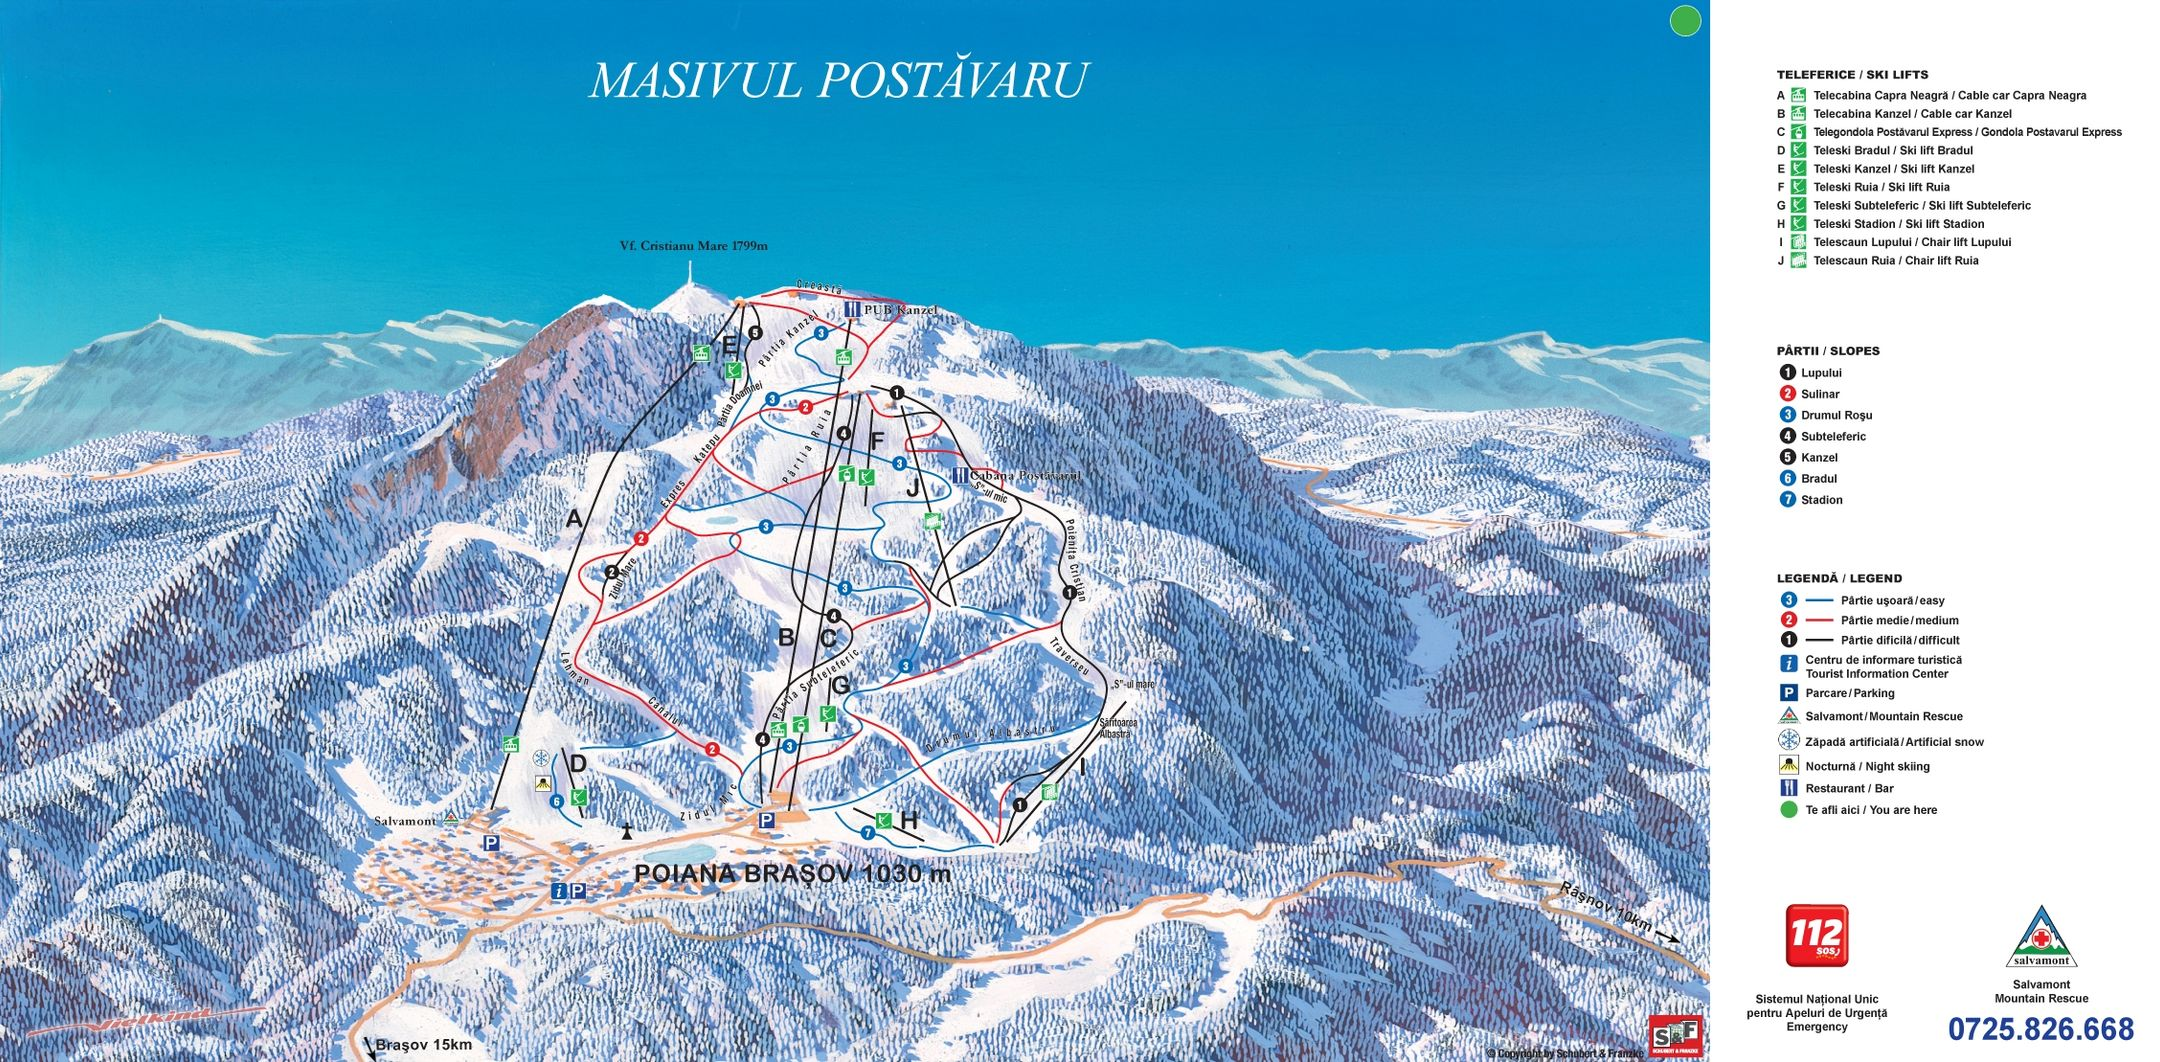 Poiana Brasov ski-resort-trail-map Romania ripatrip